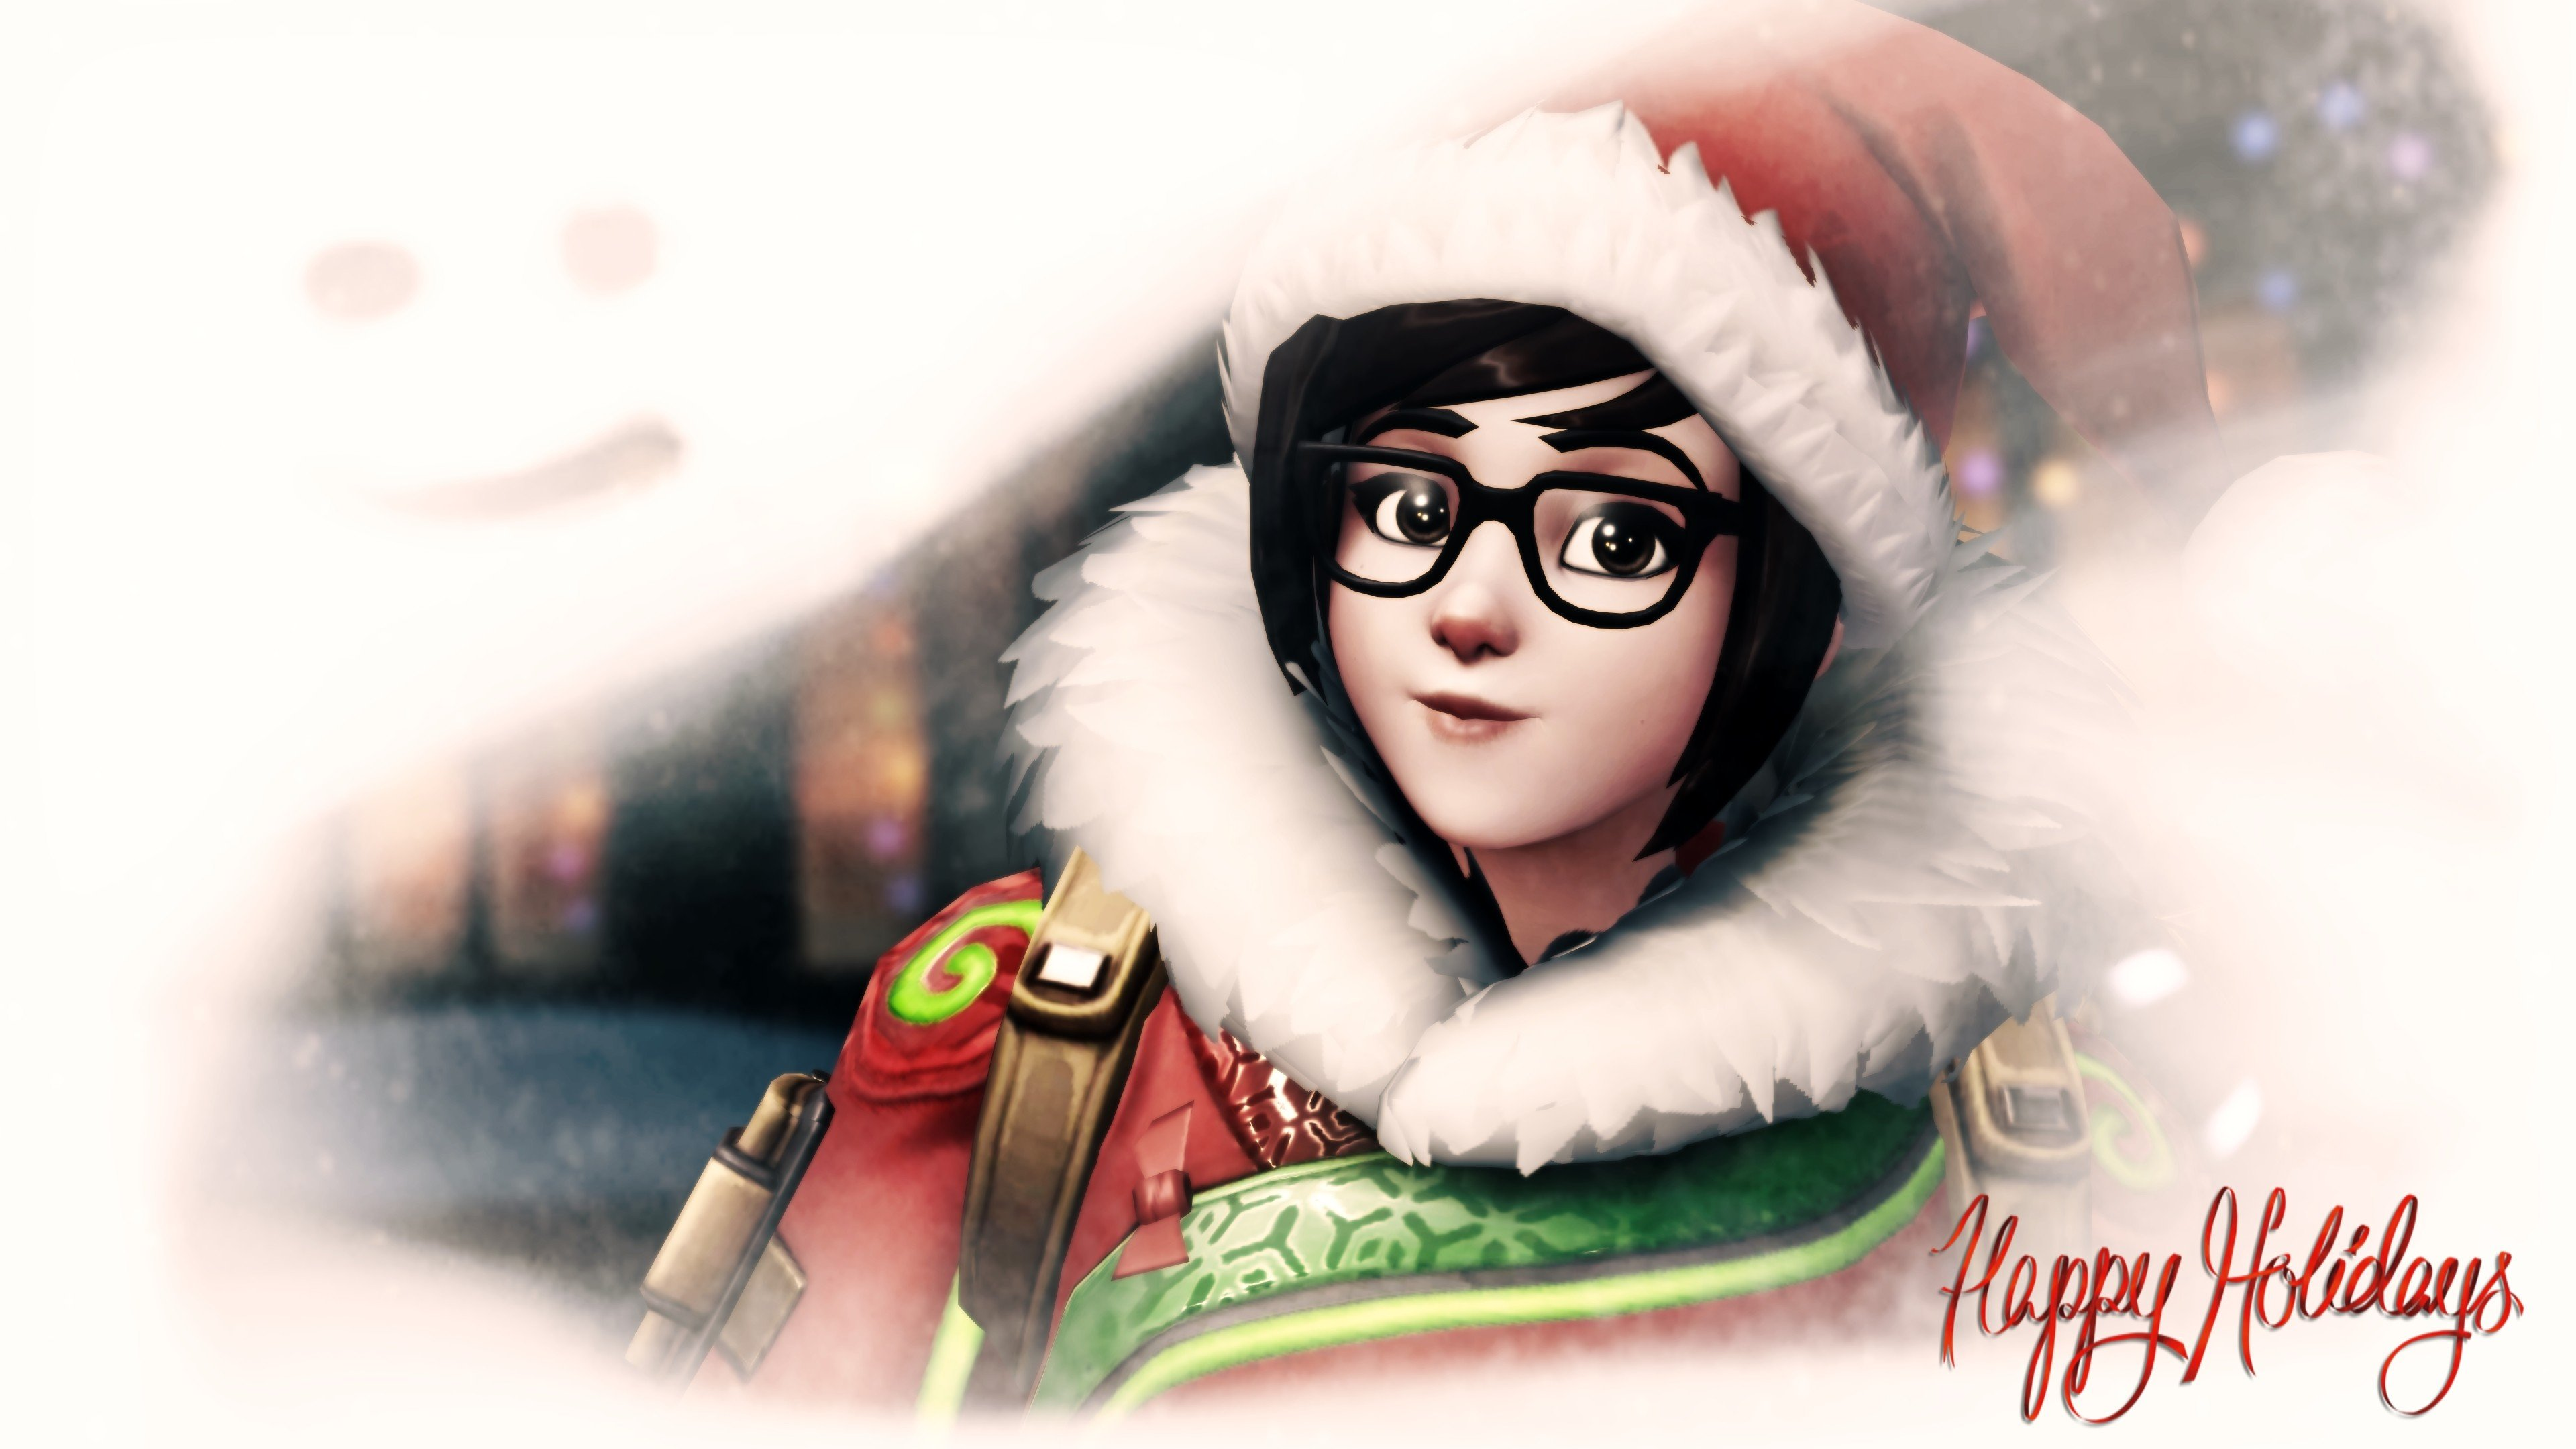 Mei overwatch overwatch christmas hd wallpapers - Overwatch christmas wallpaper ...